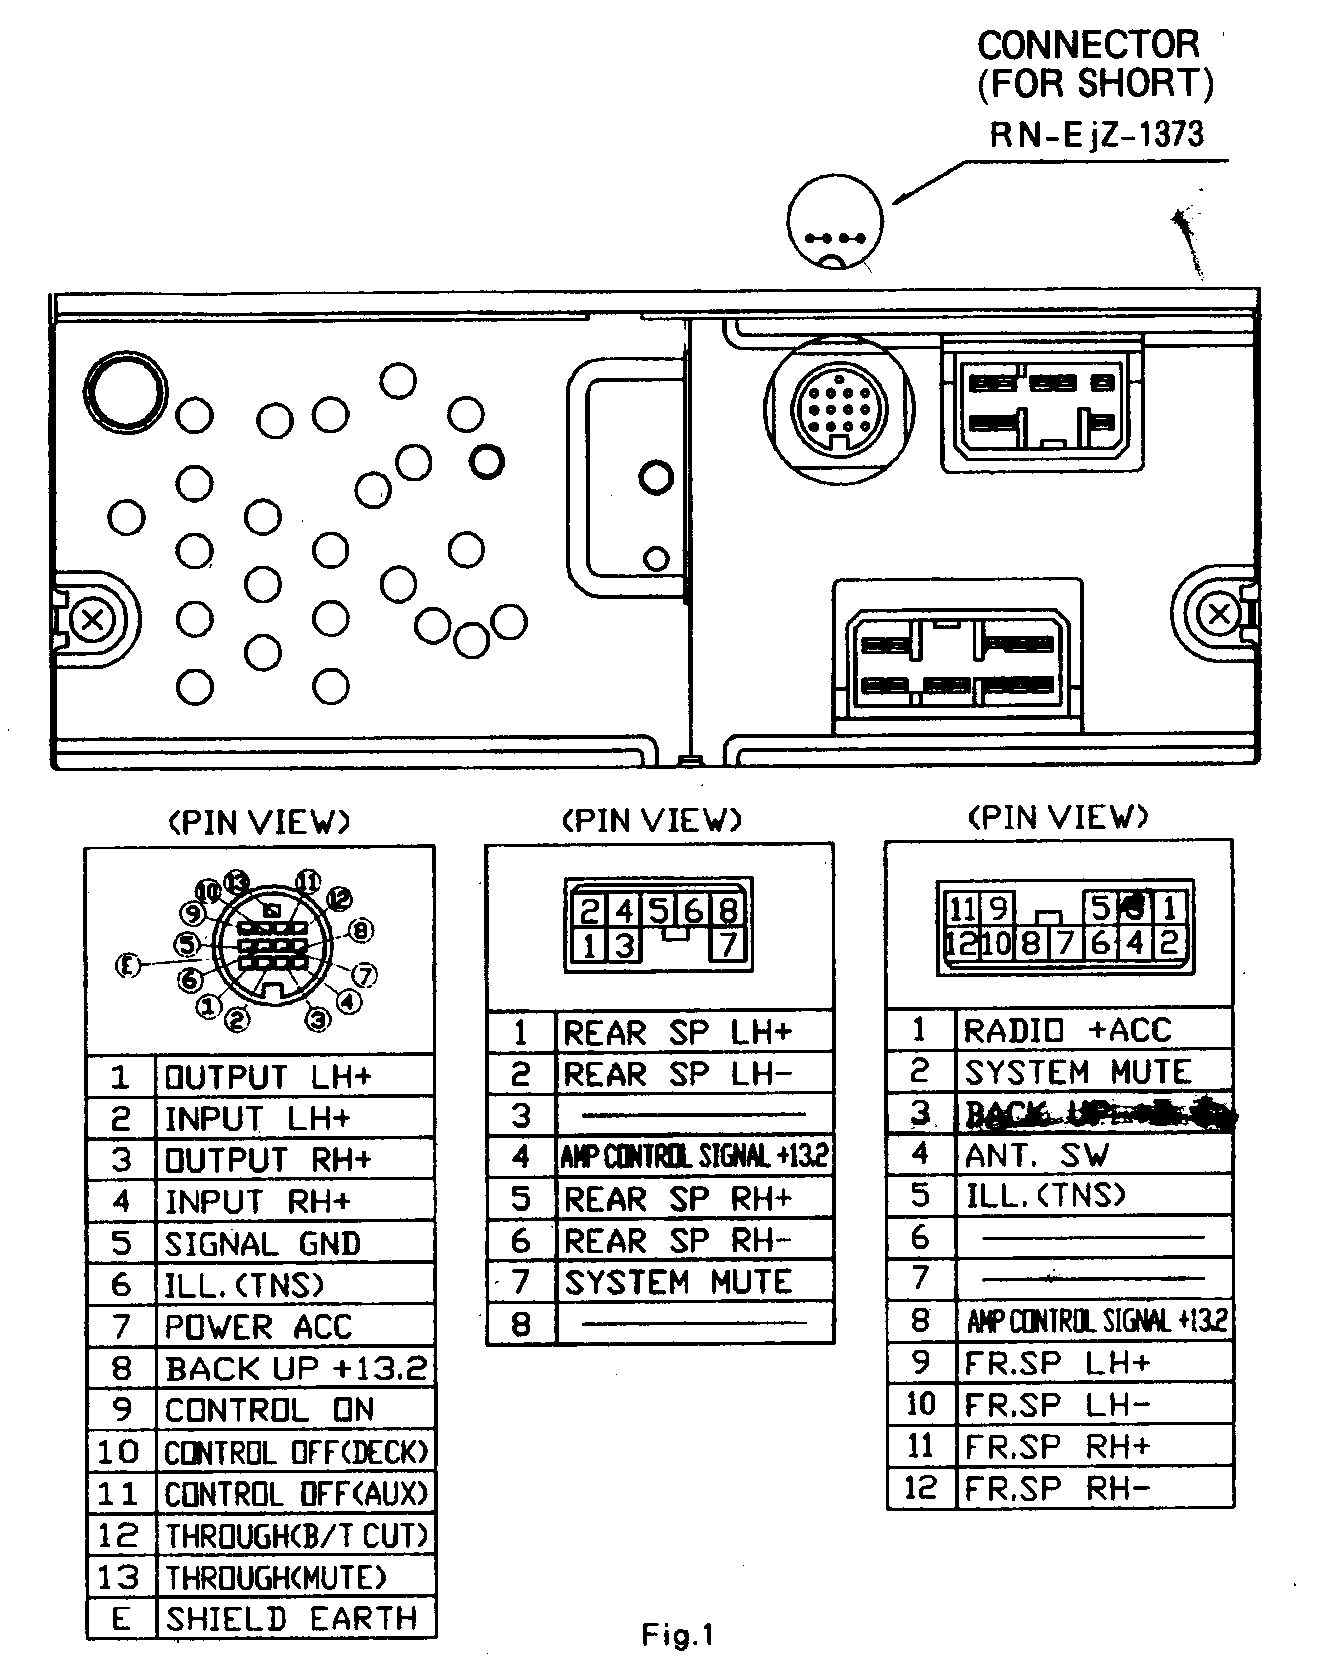 MAZDA Car Radio Wiring Connector on 2003 mazda mpv fuse box diagram